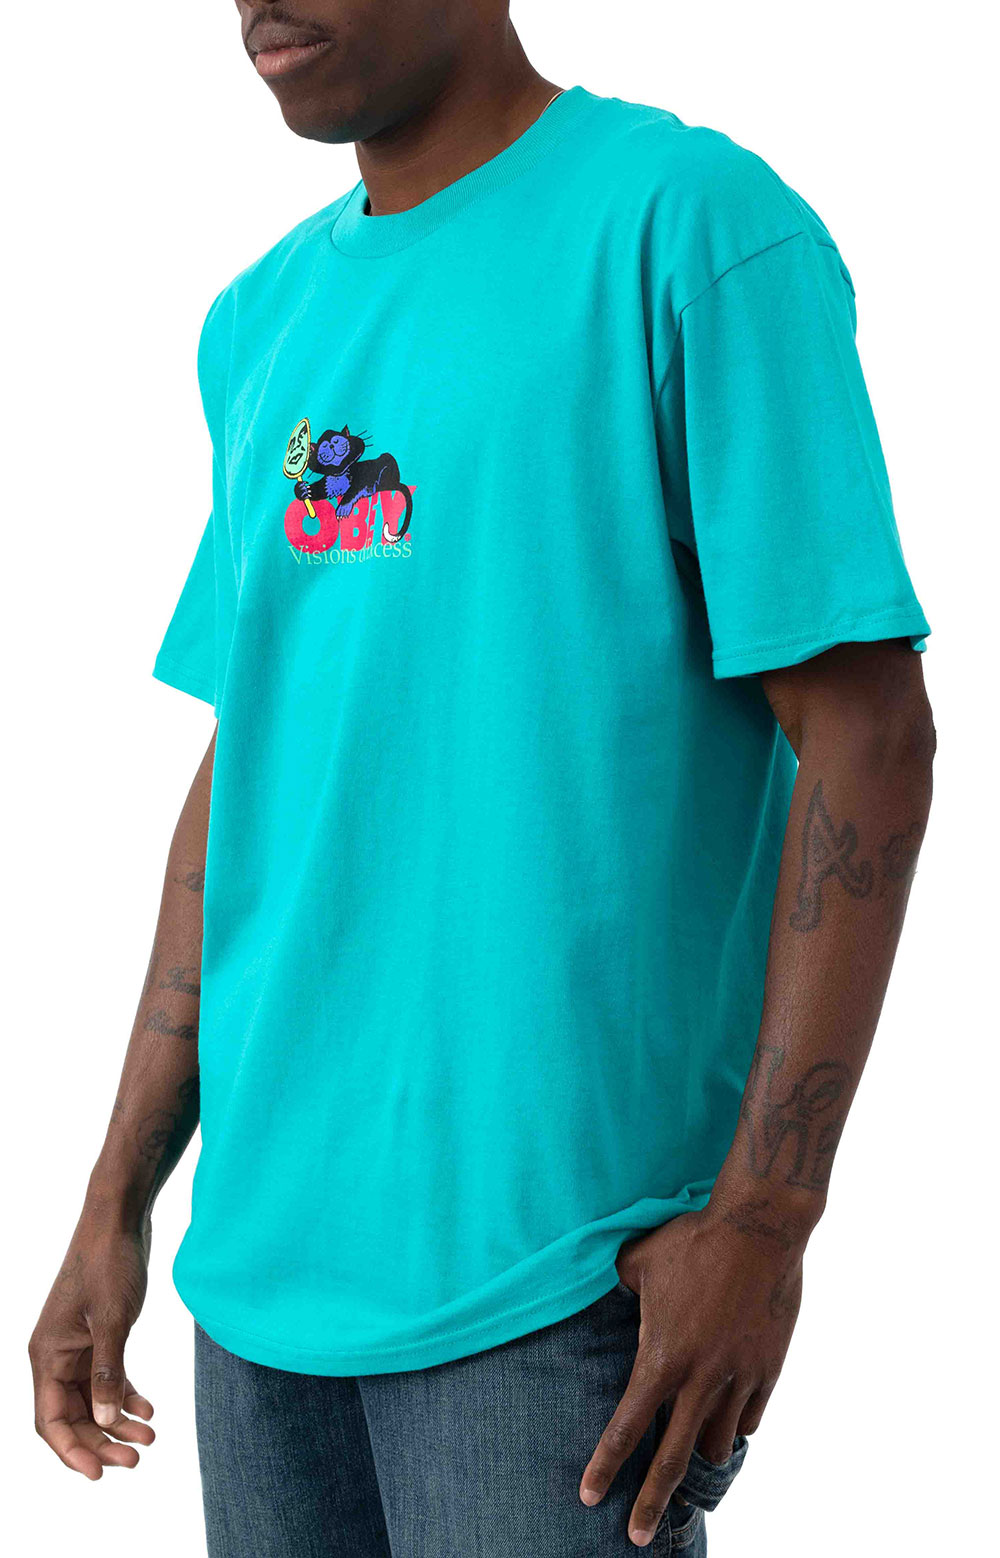 Visions Of Excess T-Shirt - Teal 2